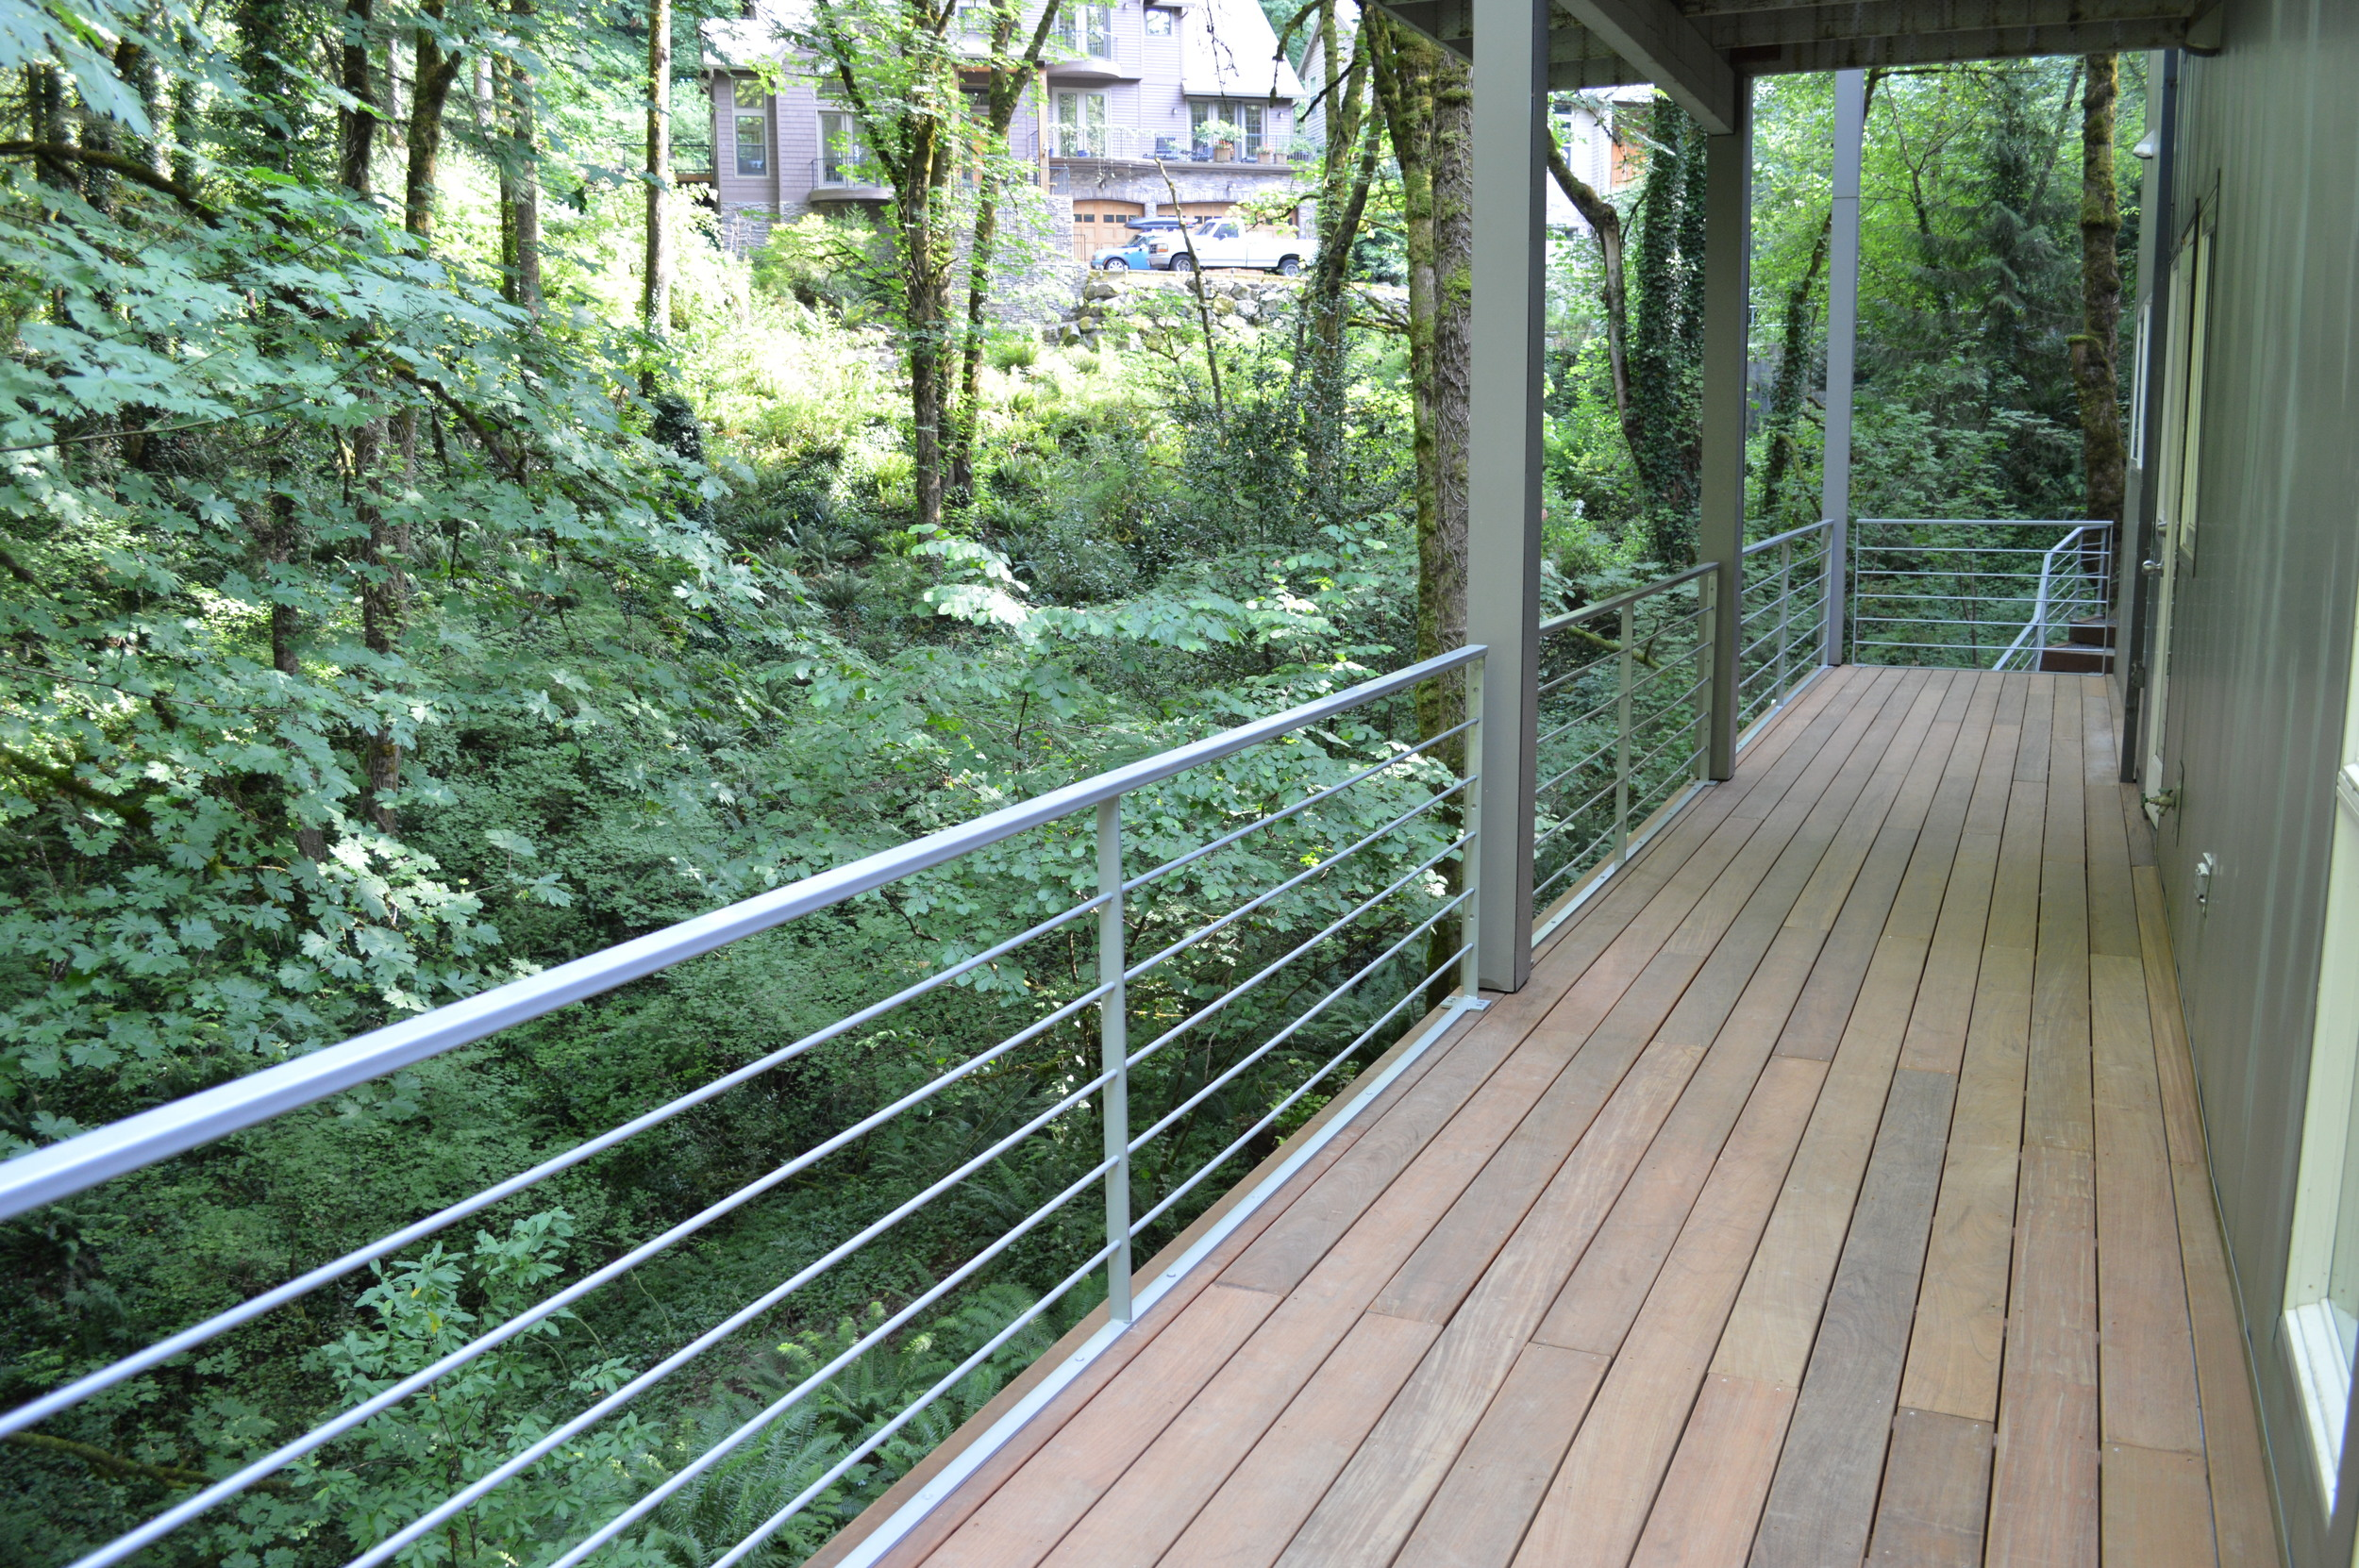 ipe deck and railing.JPG